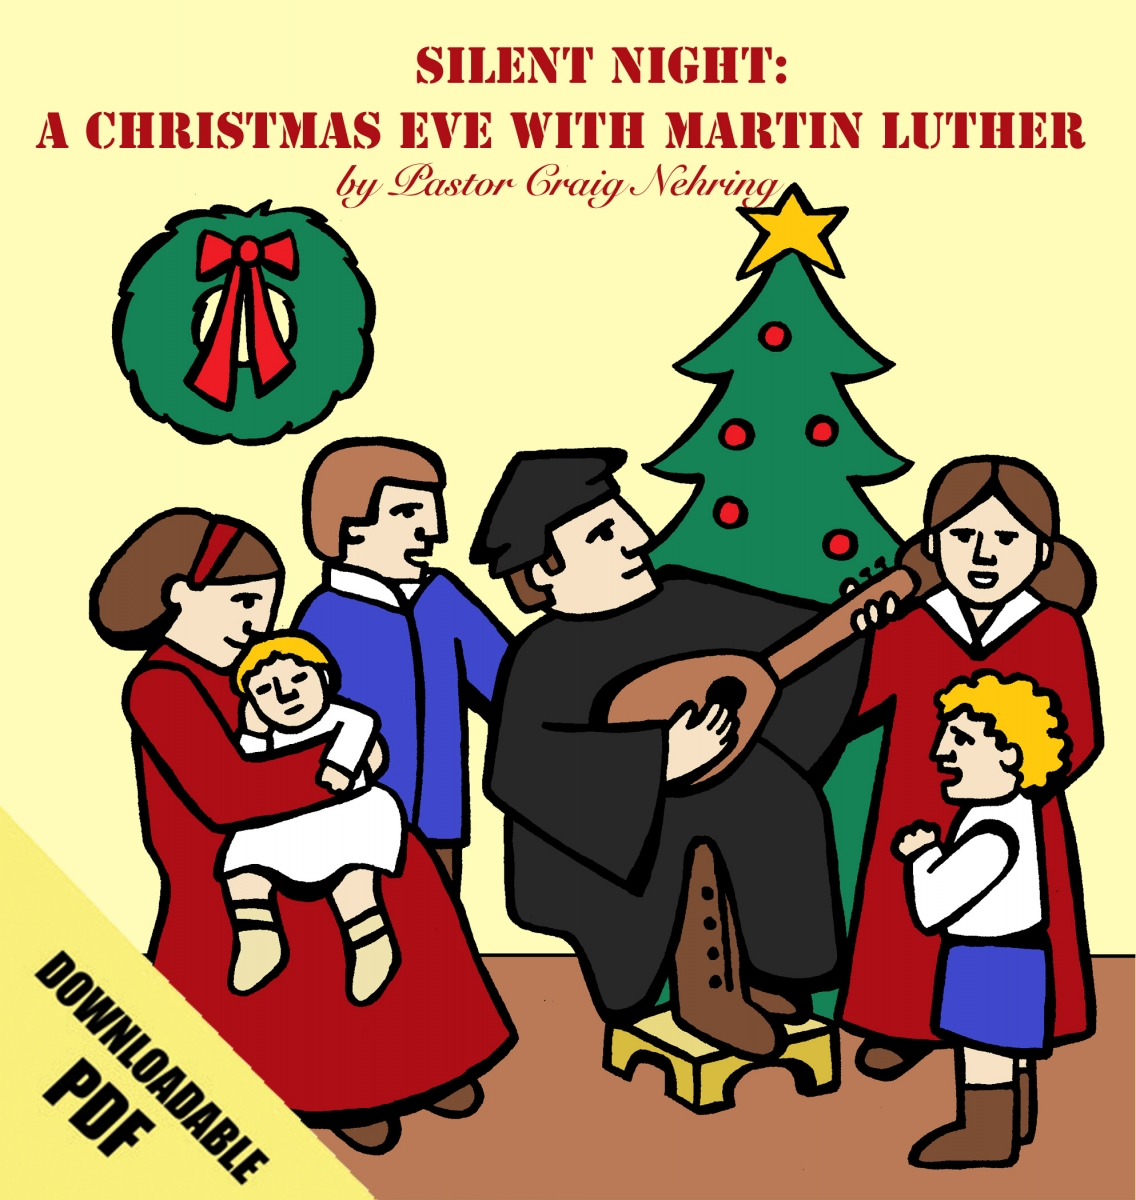 Silent Night: A Christmas Eve with Martin Luther